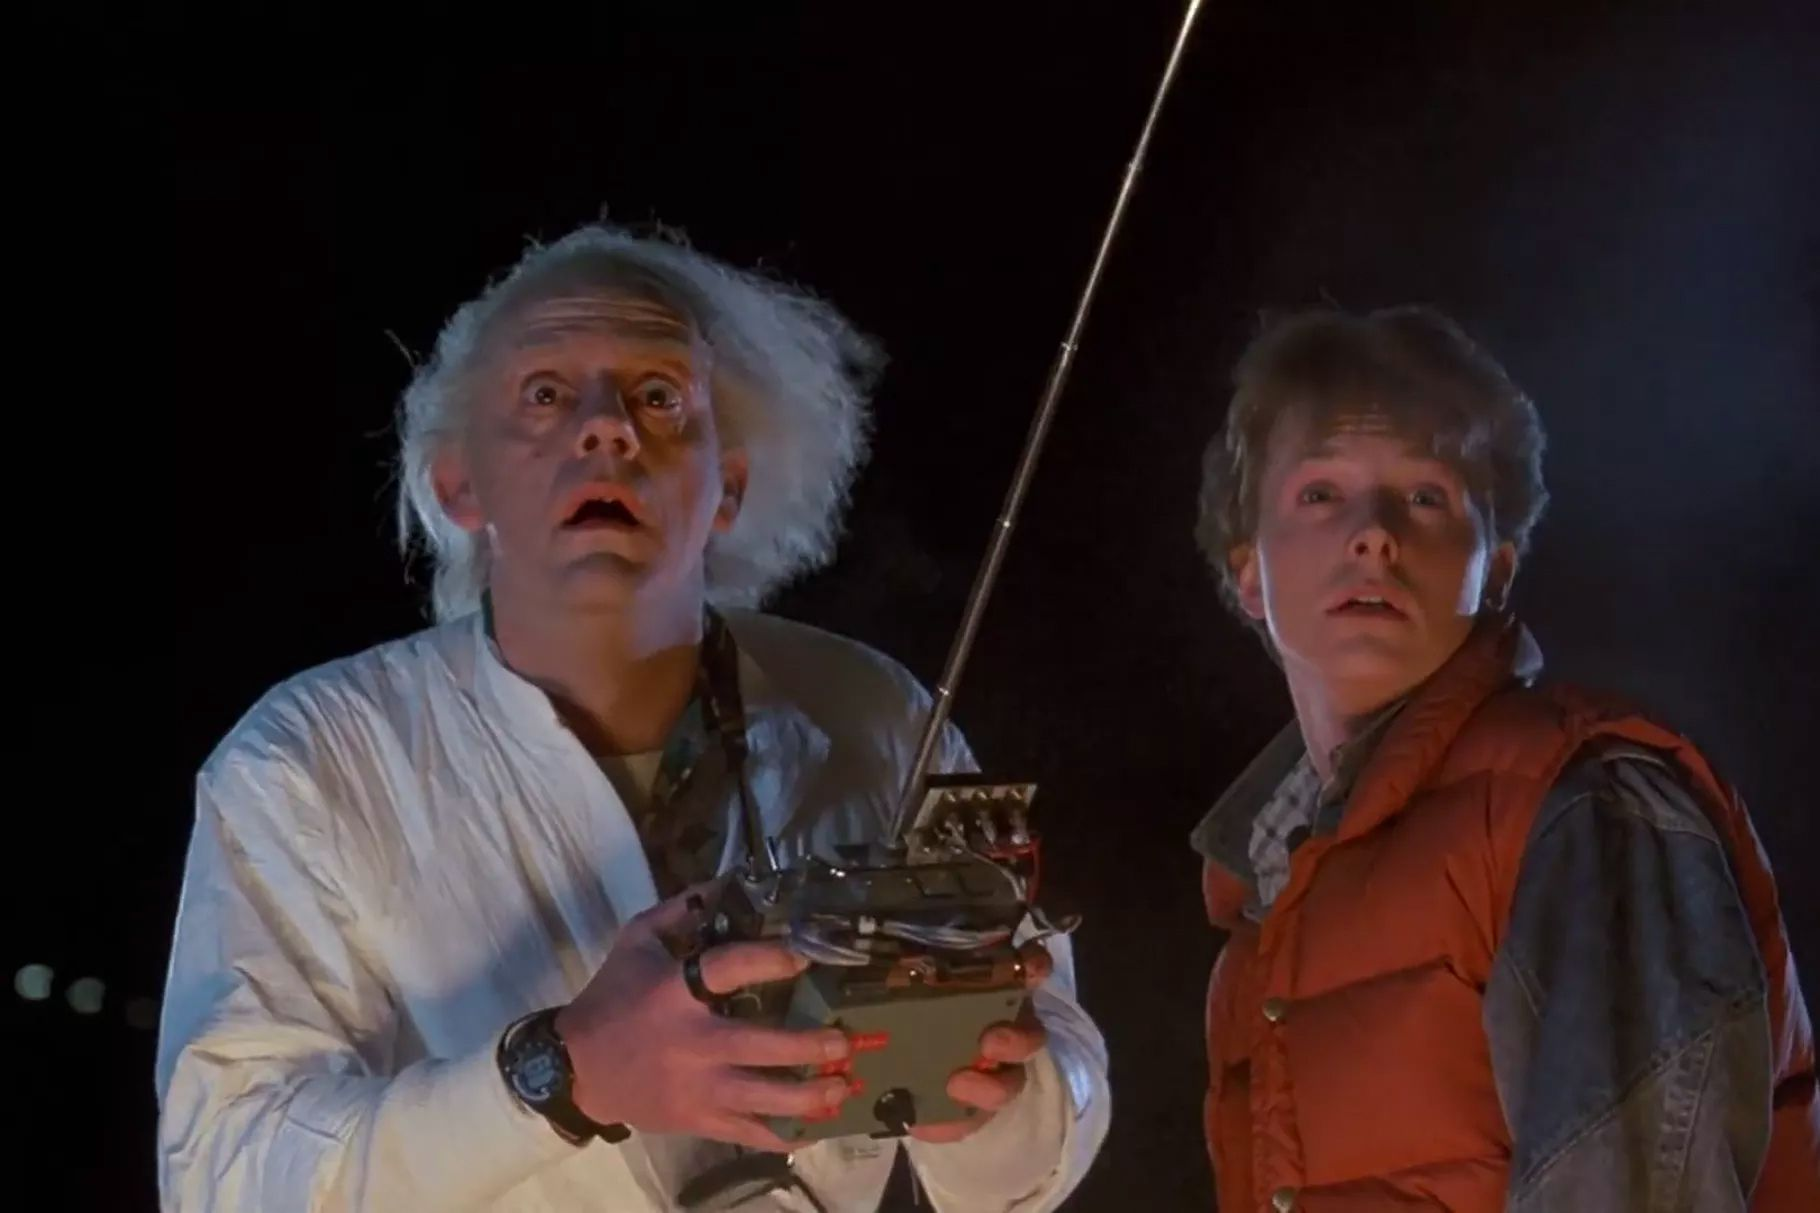 A Back to the Future Musical Is Finally Coming, So Here Are Some Song Ideas